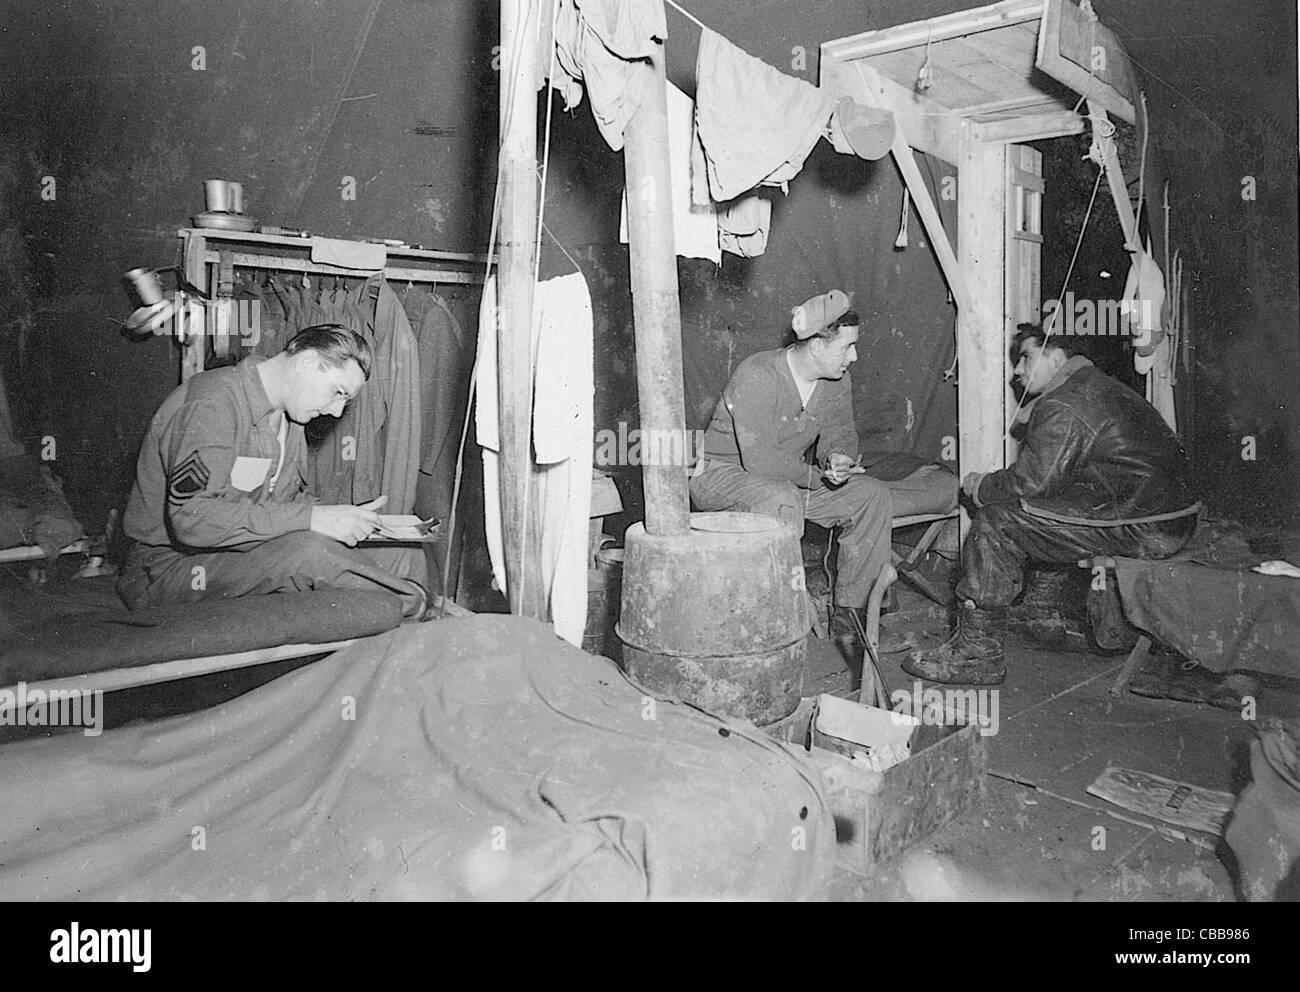 WW11 American USAAF airmen relax in their tented accommodation somewhere in France during the war. - Stock Image